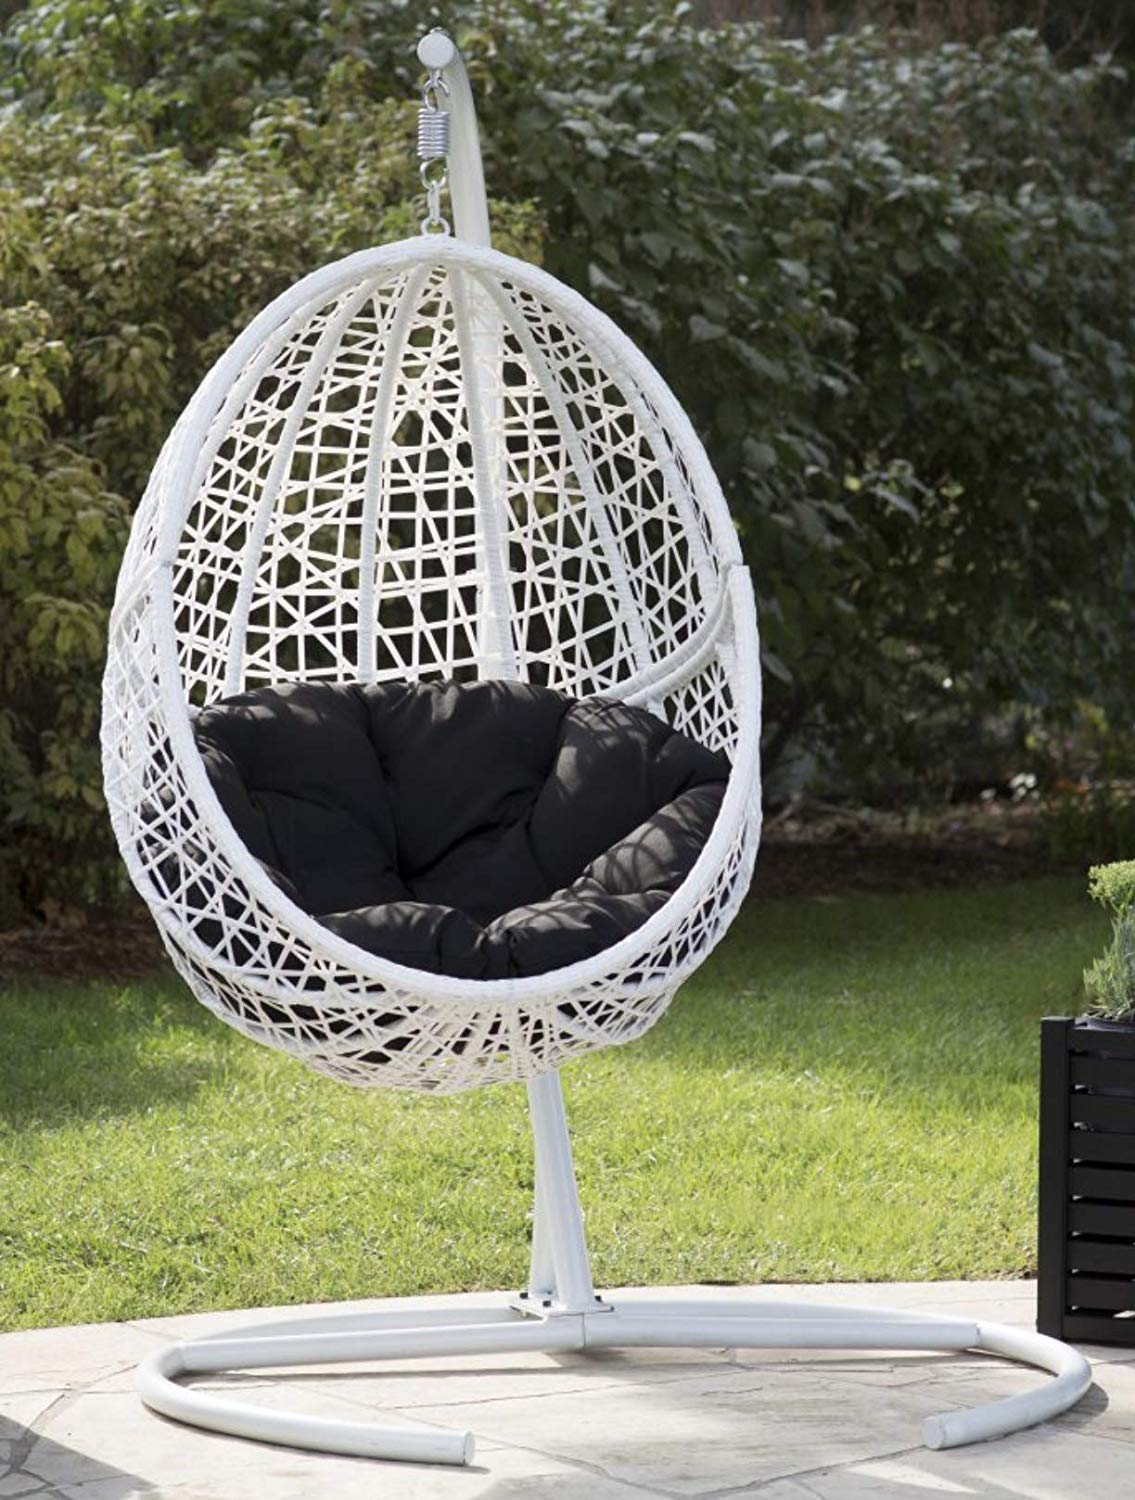 Cheap Hanging Egg Chair Find Hanging Egg Chair Deals On Line At Alibaba Com